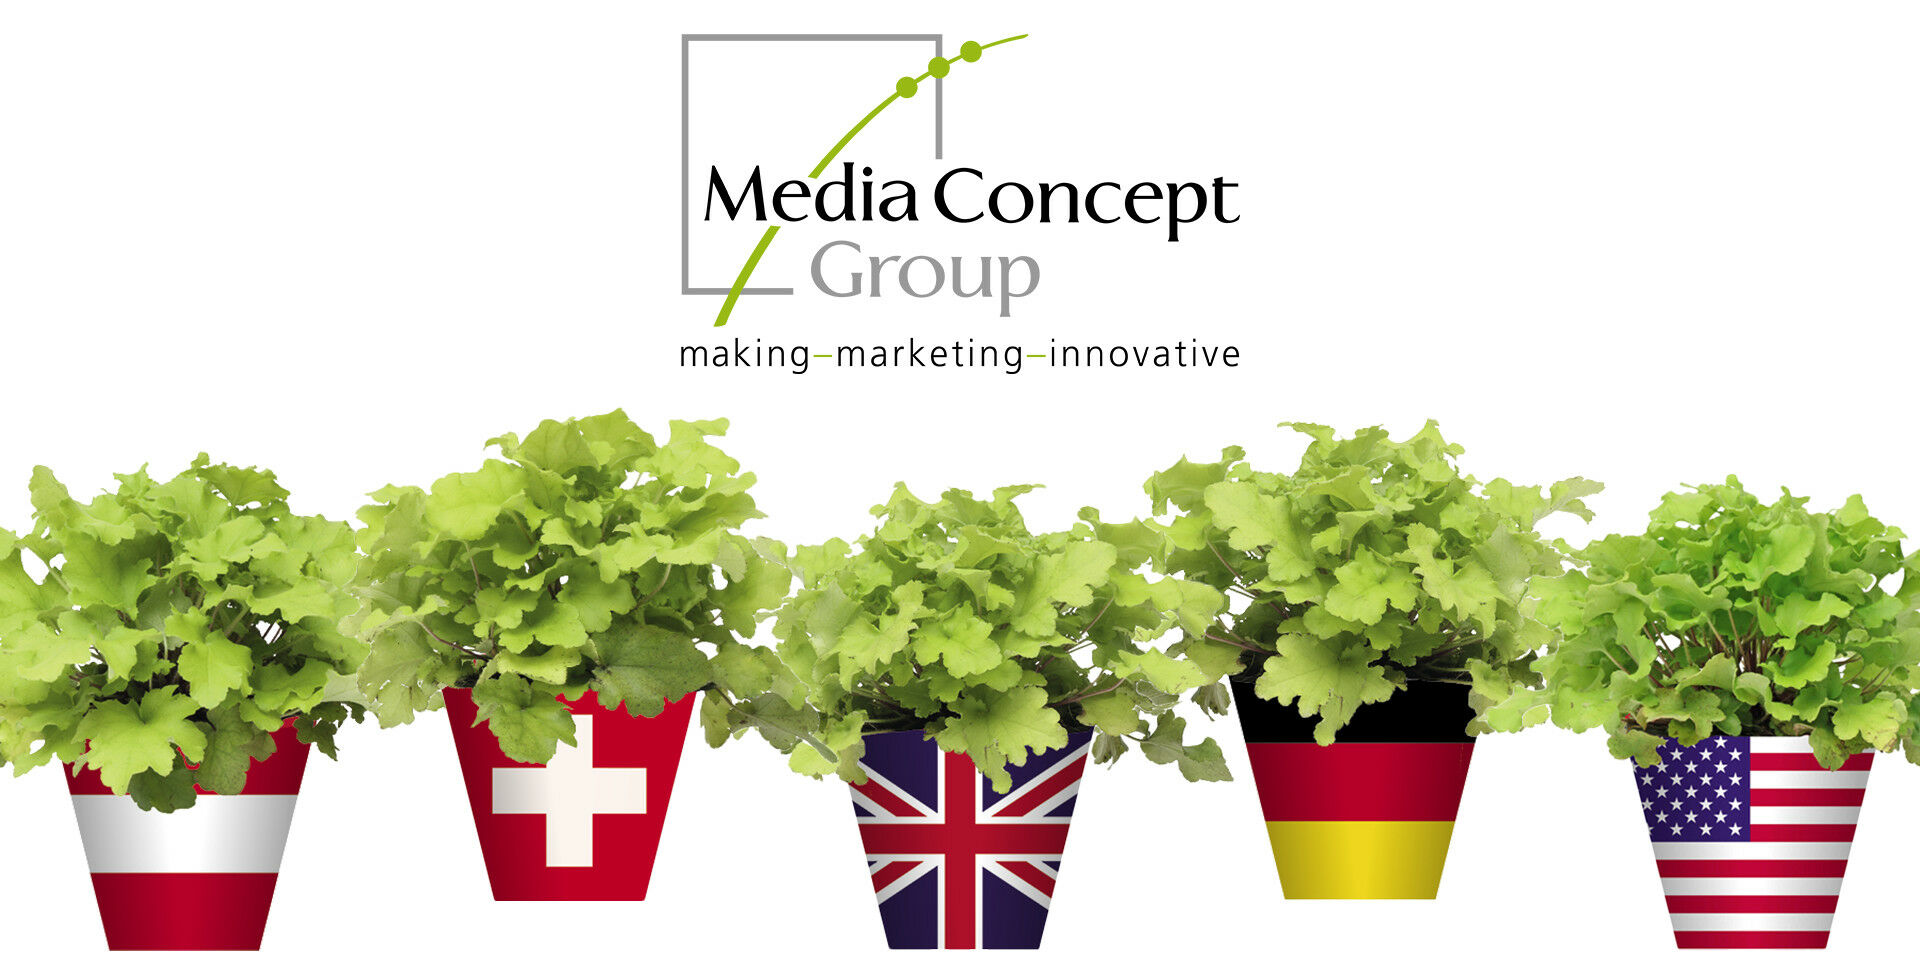 Media Concept Group